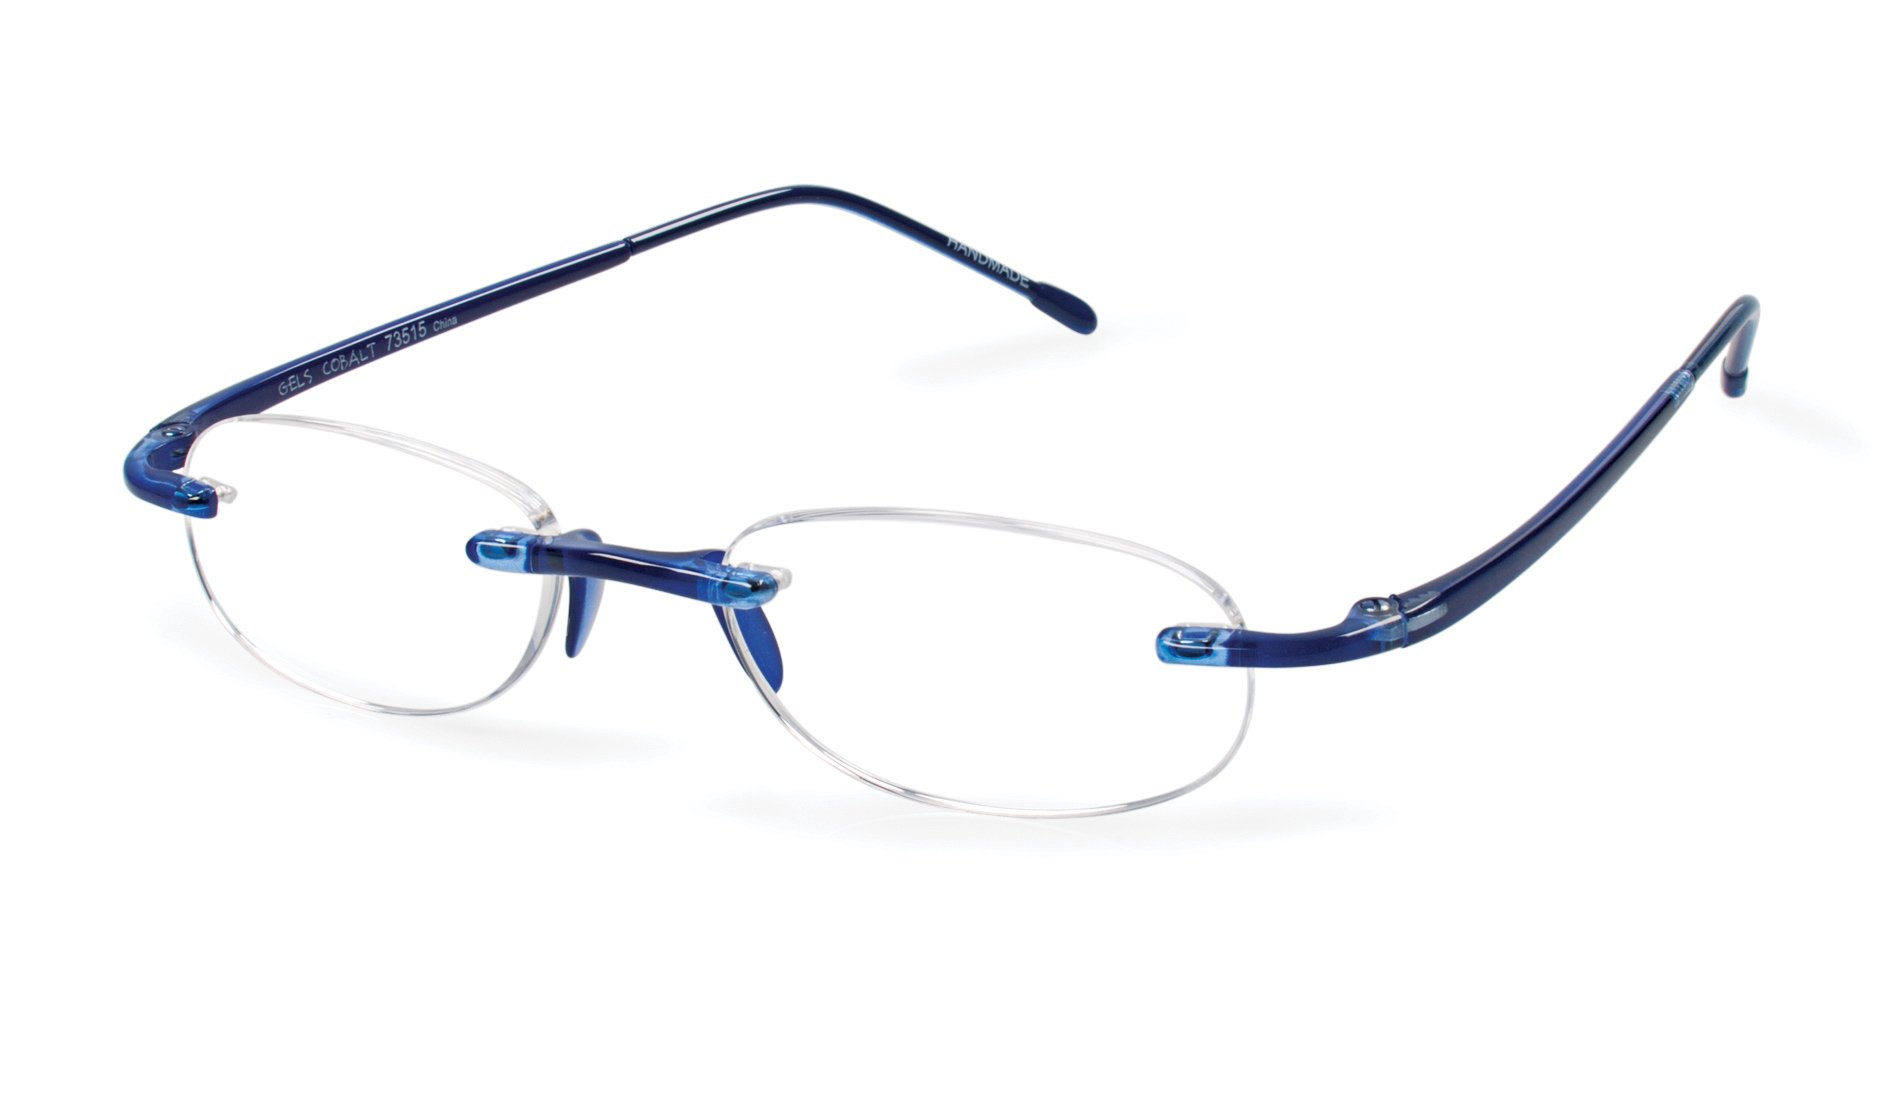 Gels - Lightweight Rimless Fashion Readers - The Original Reading Glasses for Men and Women - Cobalt Blue (+2.50 Magnification Power) by Scojo New York (Image #1)